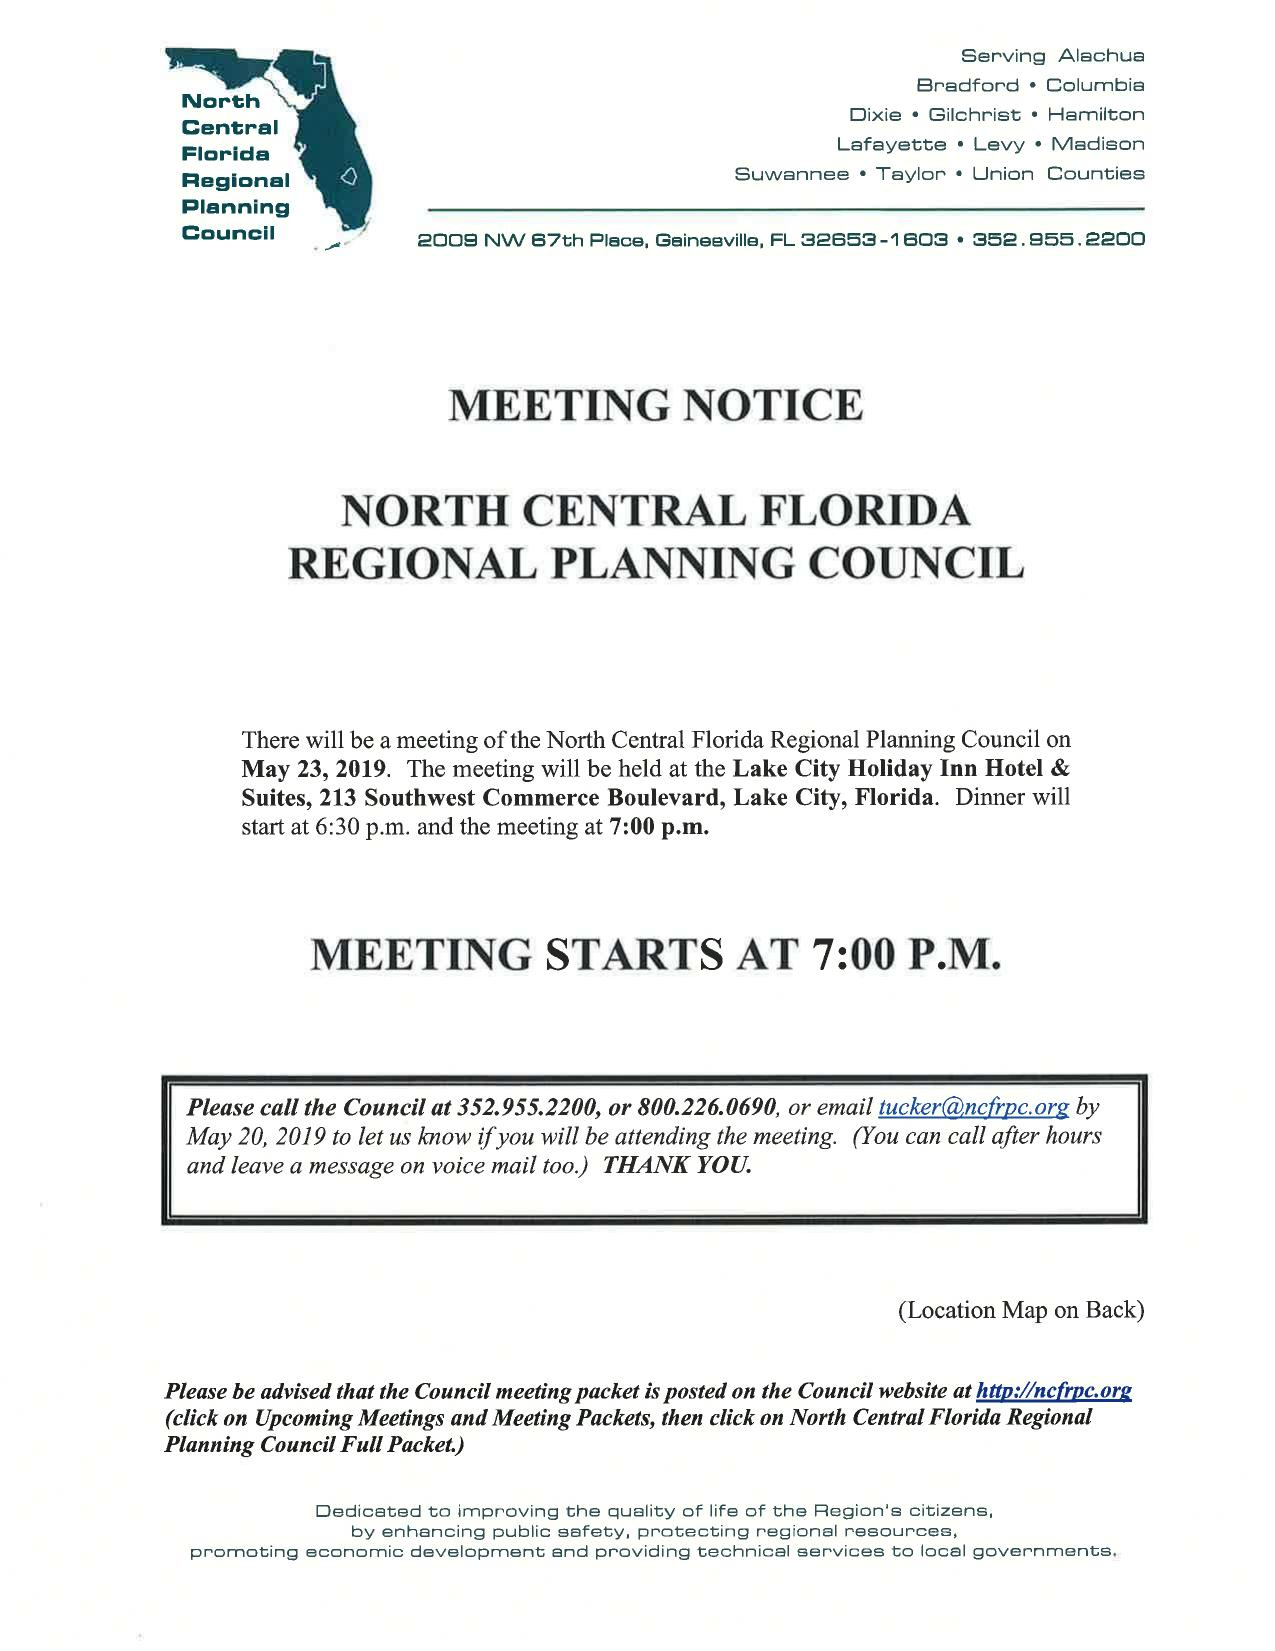 1275x1651 Meeting Notice, Packet, in NCFRPC Meeting, Lake City, FL, by John S. Quarterman, for WWALS.net, 23 May 2019